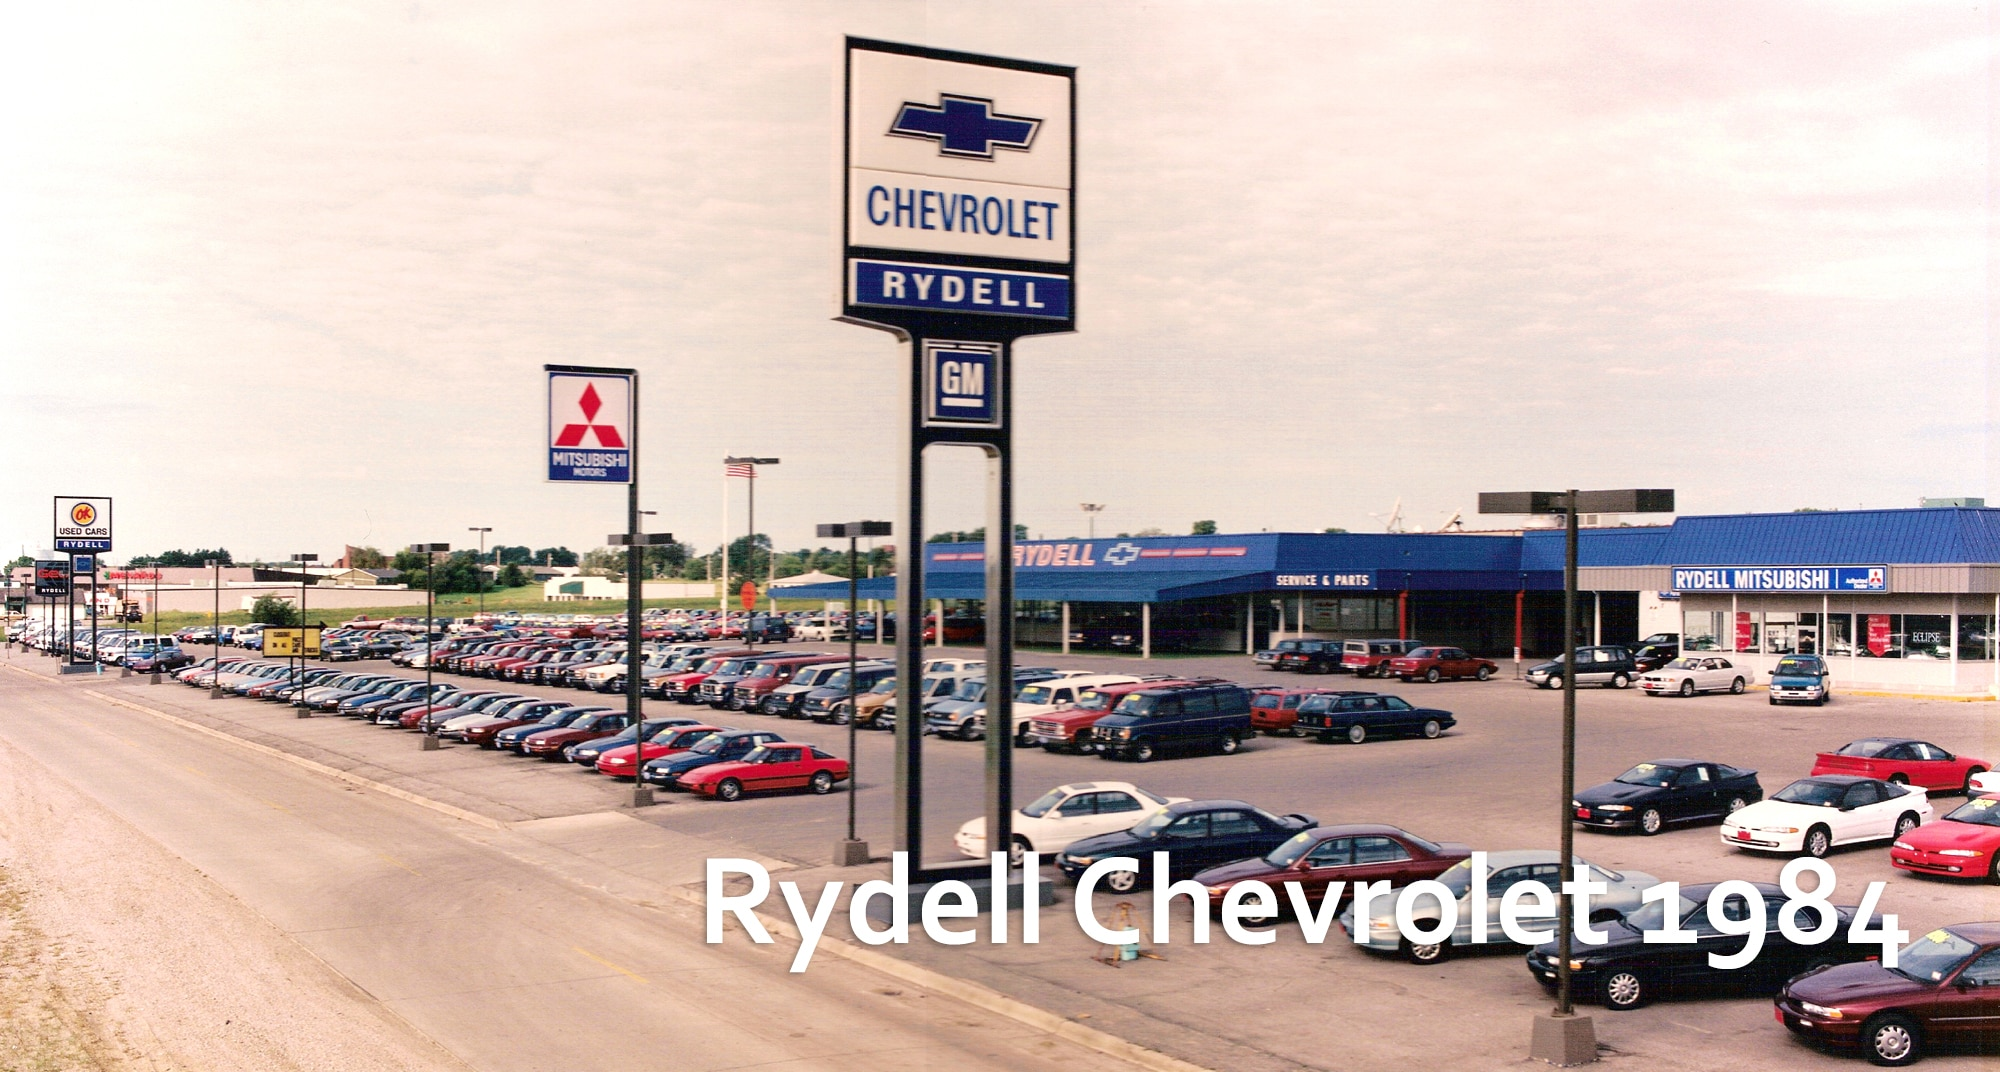 In 1984, Jim Rydell Bought The Dealership Previously Known As Schukei  Chevrolet. Rydellu0027s Sold 35 New Vehicles The First Weekend They Were Open  By Having An ...